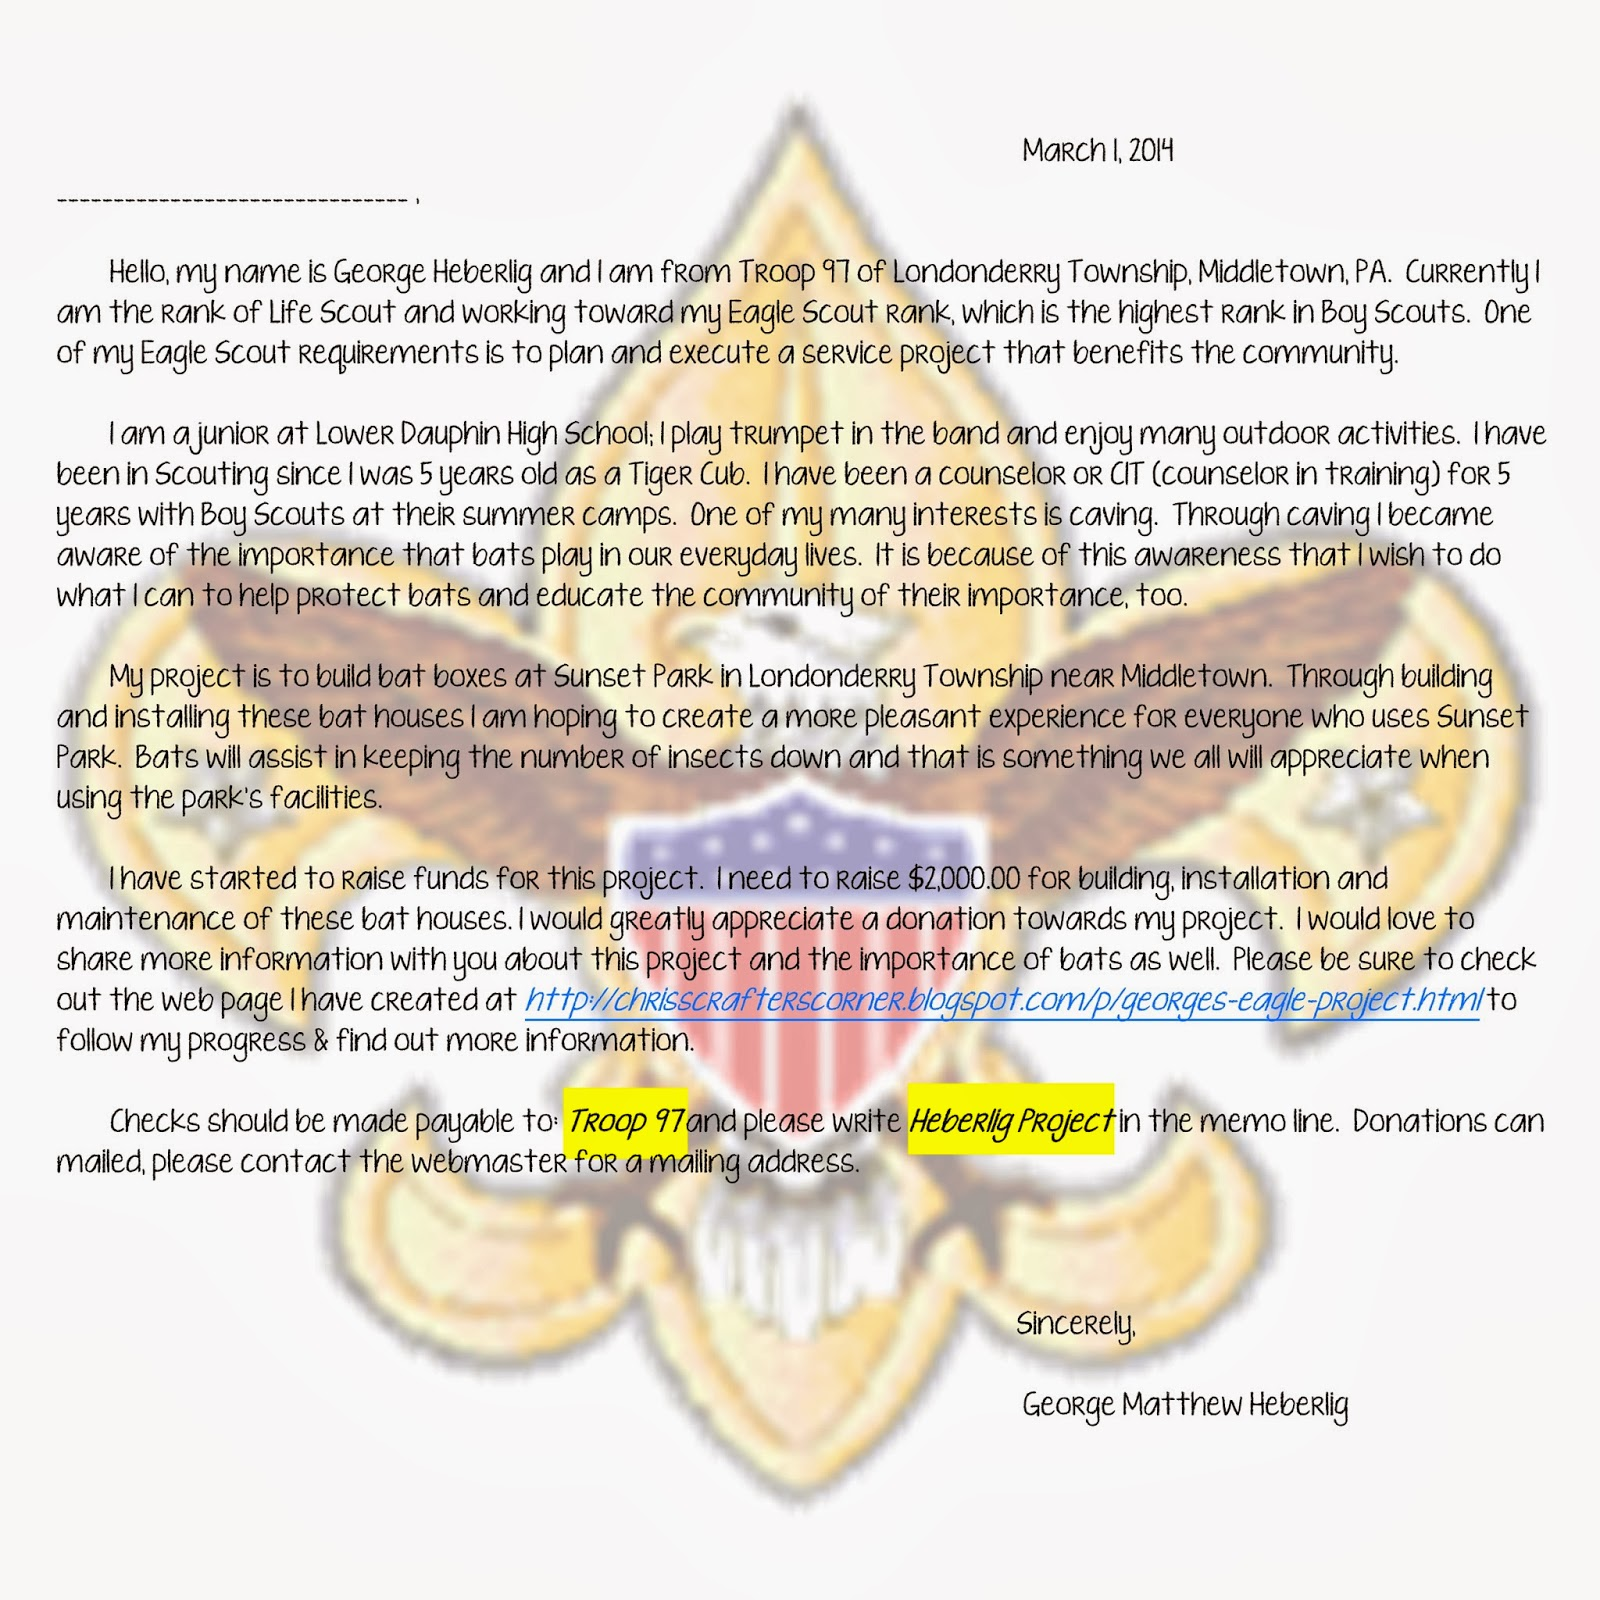 George's+Eagle+-+Page+002 Eagle Scout Project Donation Letter Template on court honor, congratulation cards, court honor invitation, recommendation letter, ceremony invitation, emblem printable, court honor program, project plaque, event program,